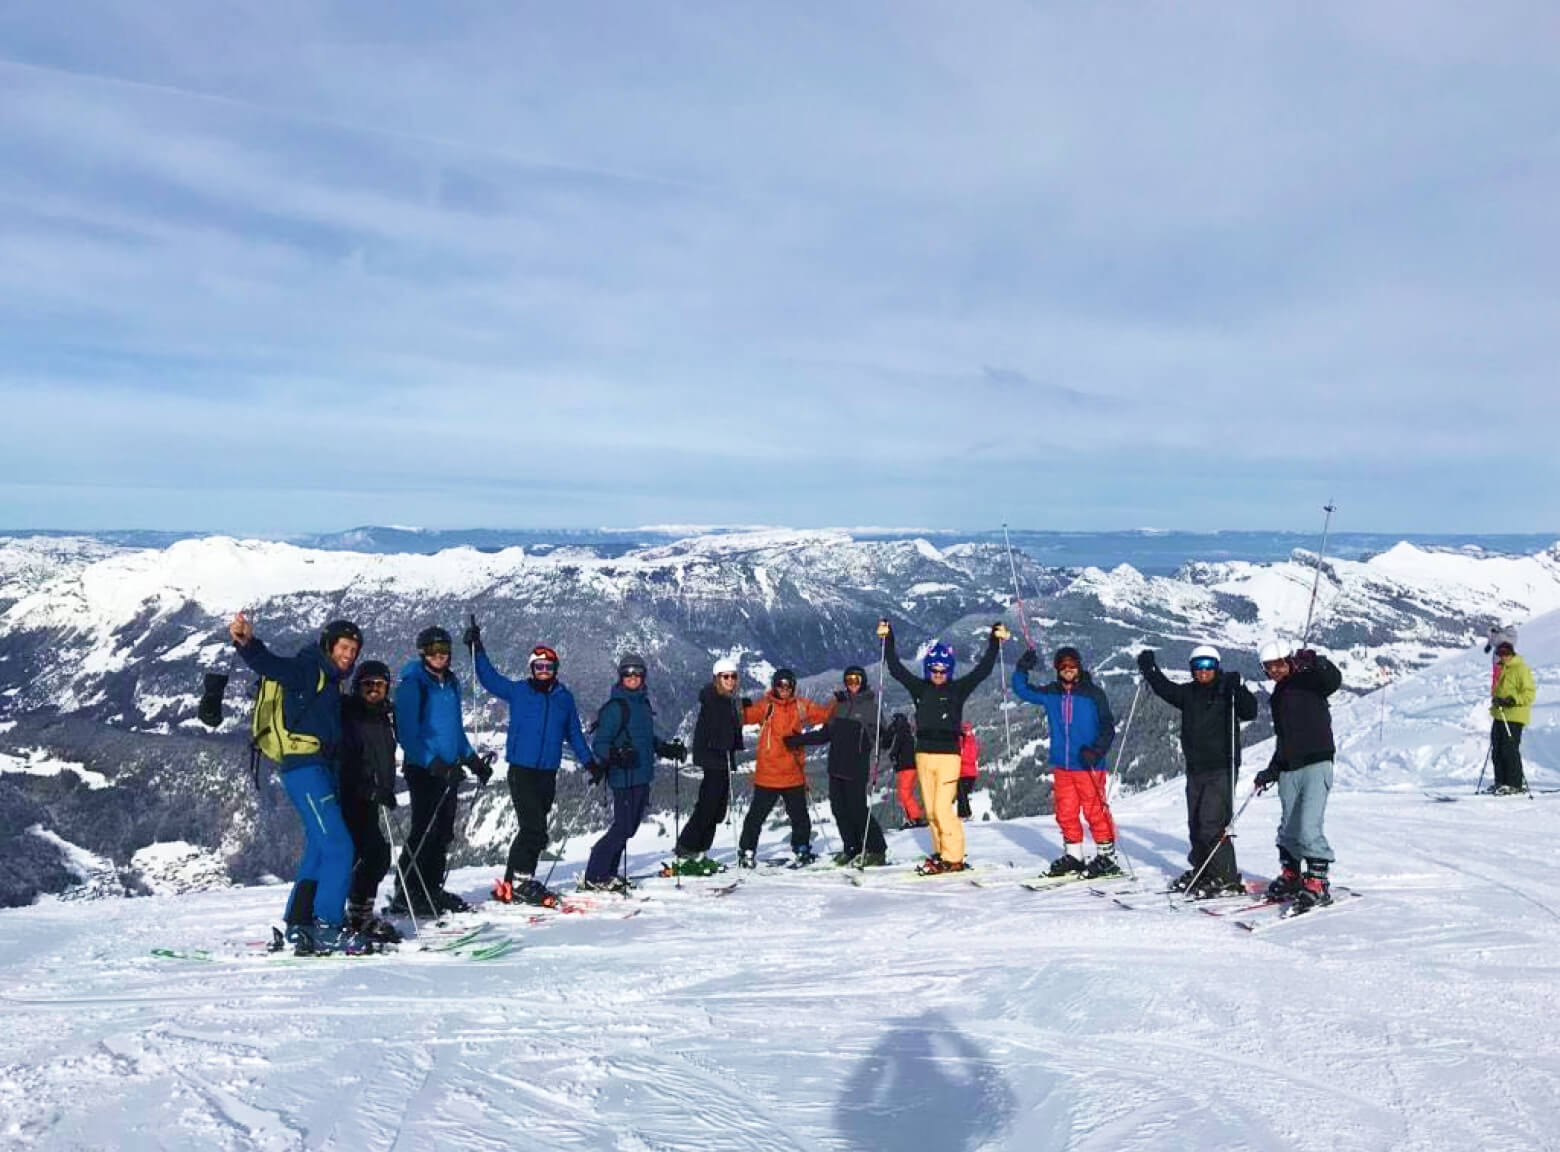 The birdie team on the annual ski trip with a mountain view and brightly dressed skiiers